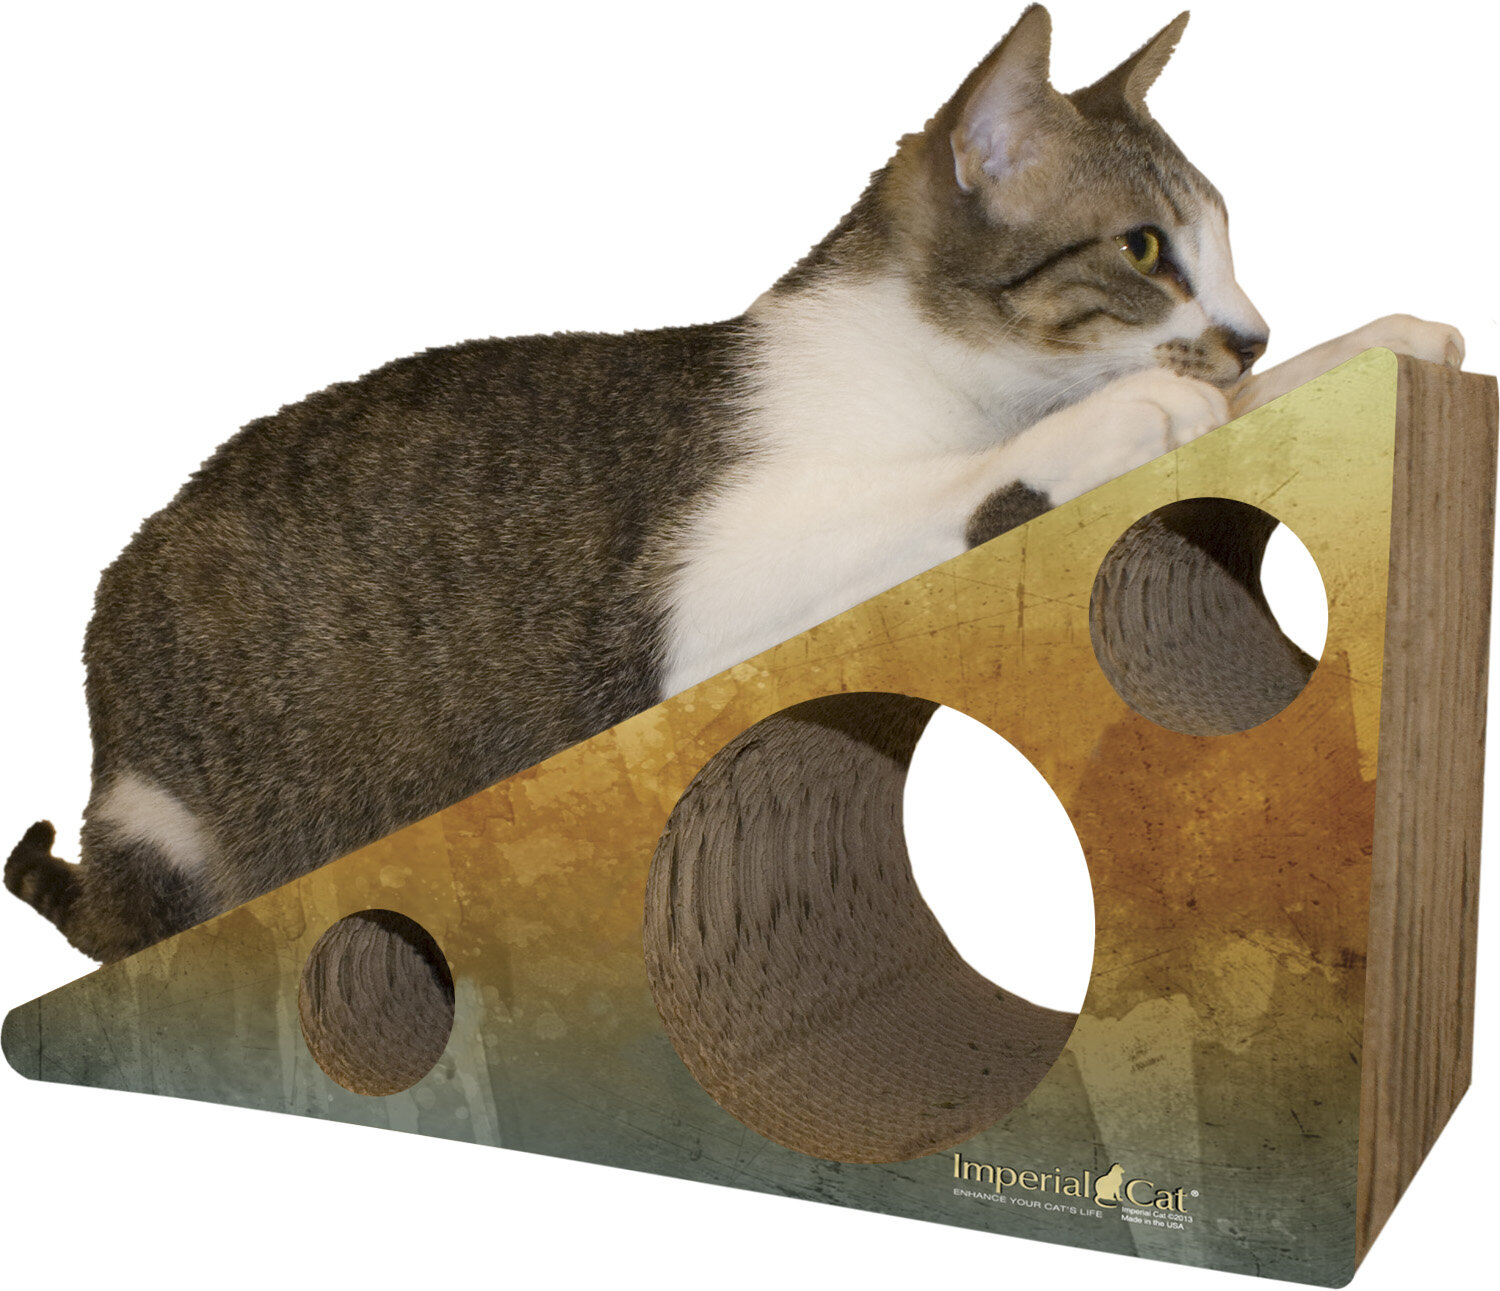 Imperial cat scratch 39 n shapes wedge recycled paper for Chaise lounge cat scratcher